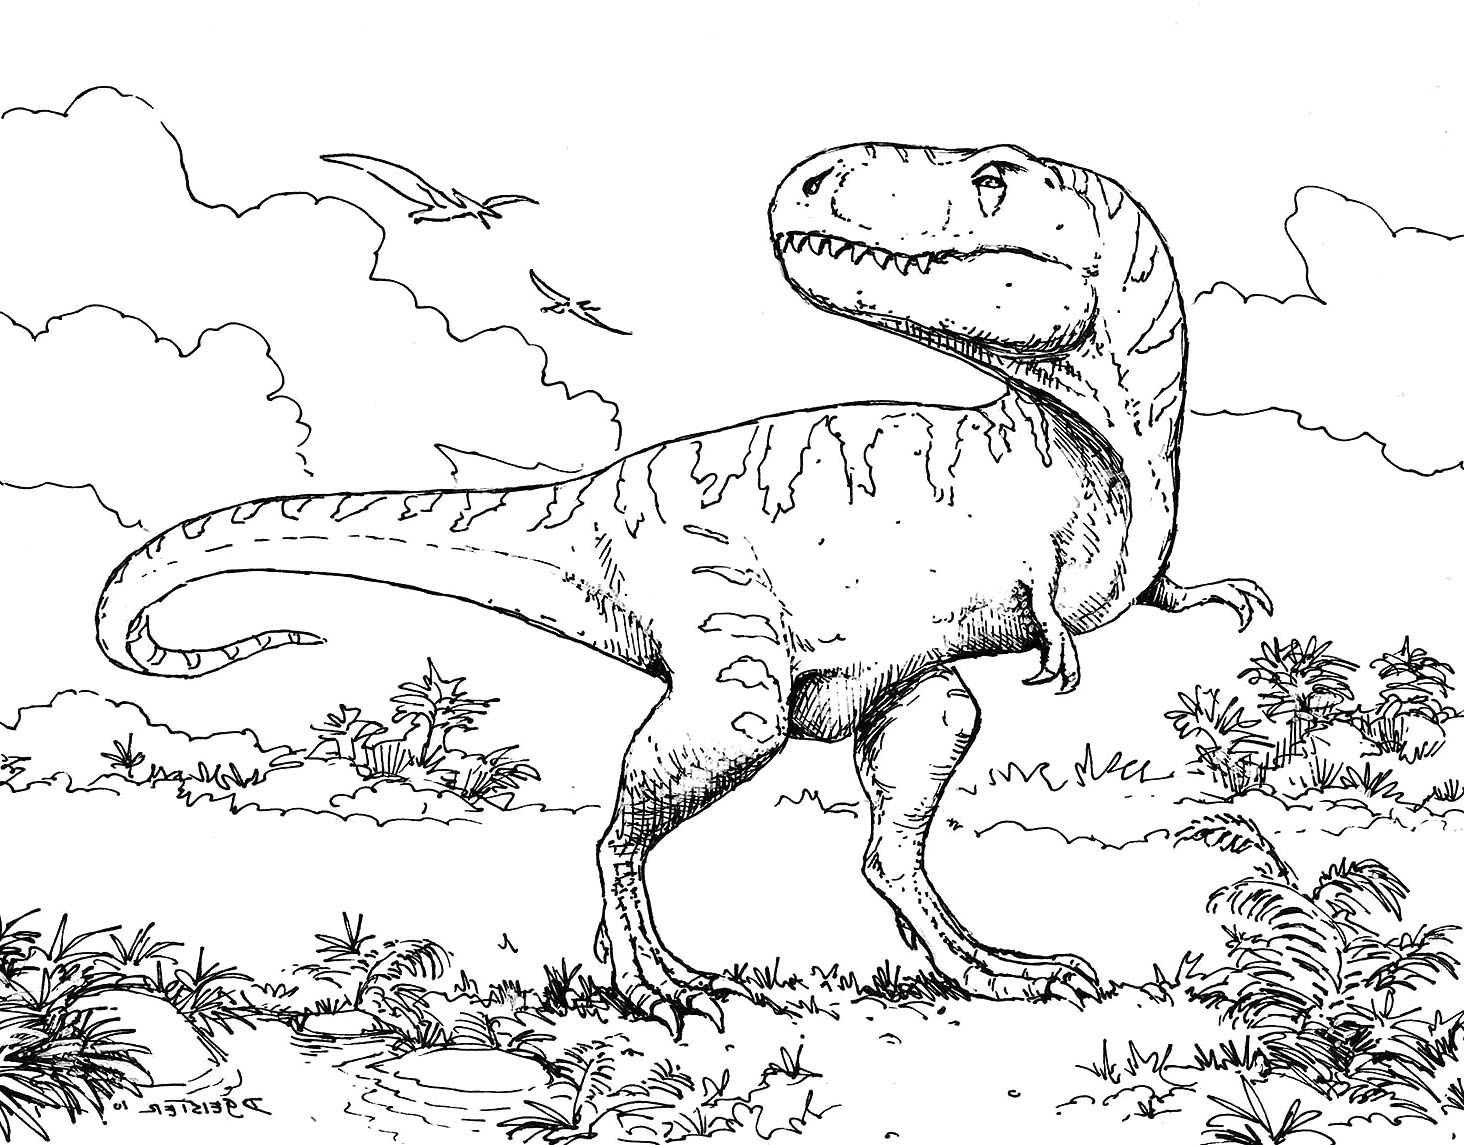 Dinosaur Coloring Pages To Print At Getdrawings | Free For - Free Printable Dinosaur Coloring Pages